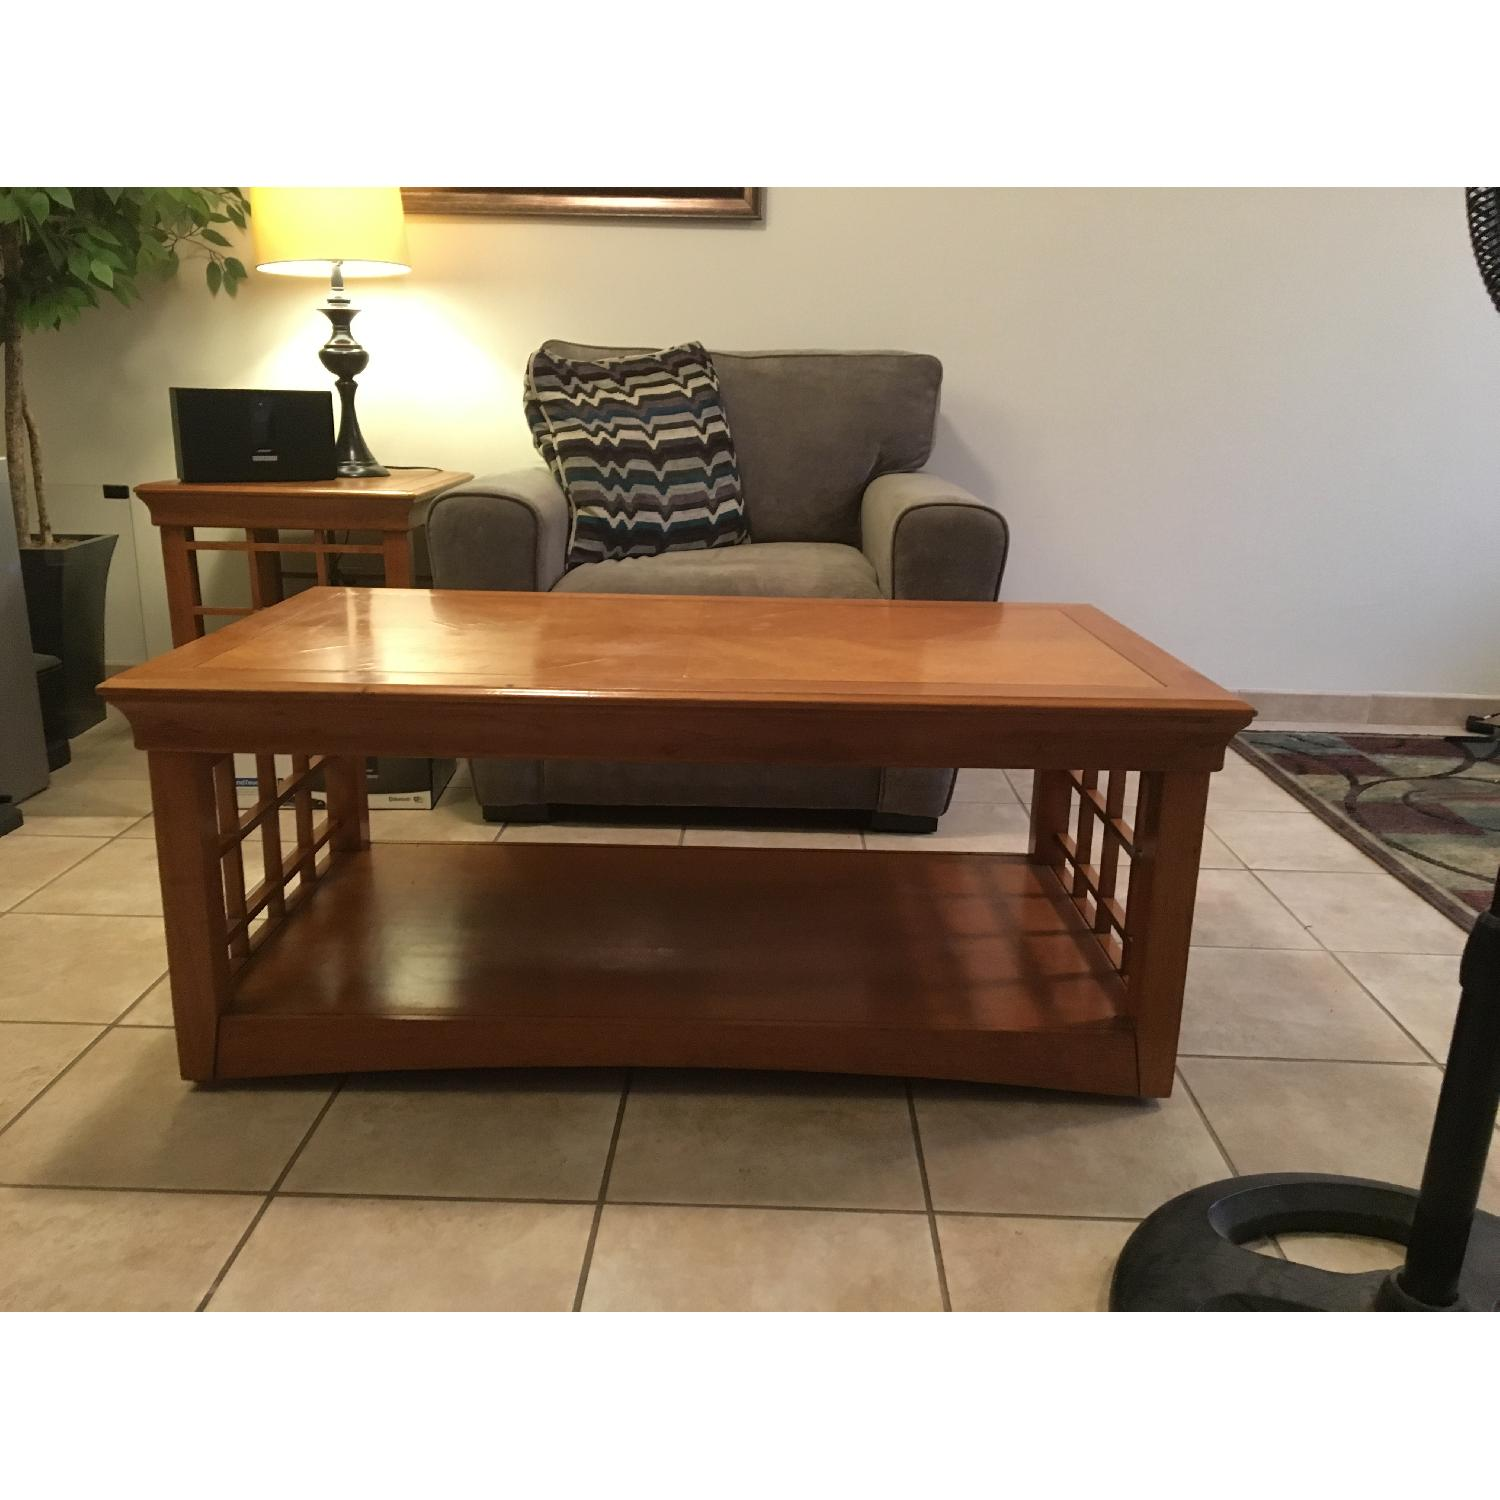 Furniture Options Wooden Coffee Table + 2 Matching End Tables - image-2